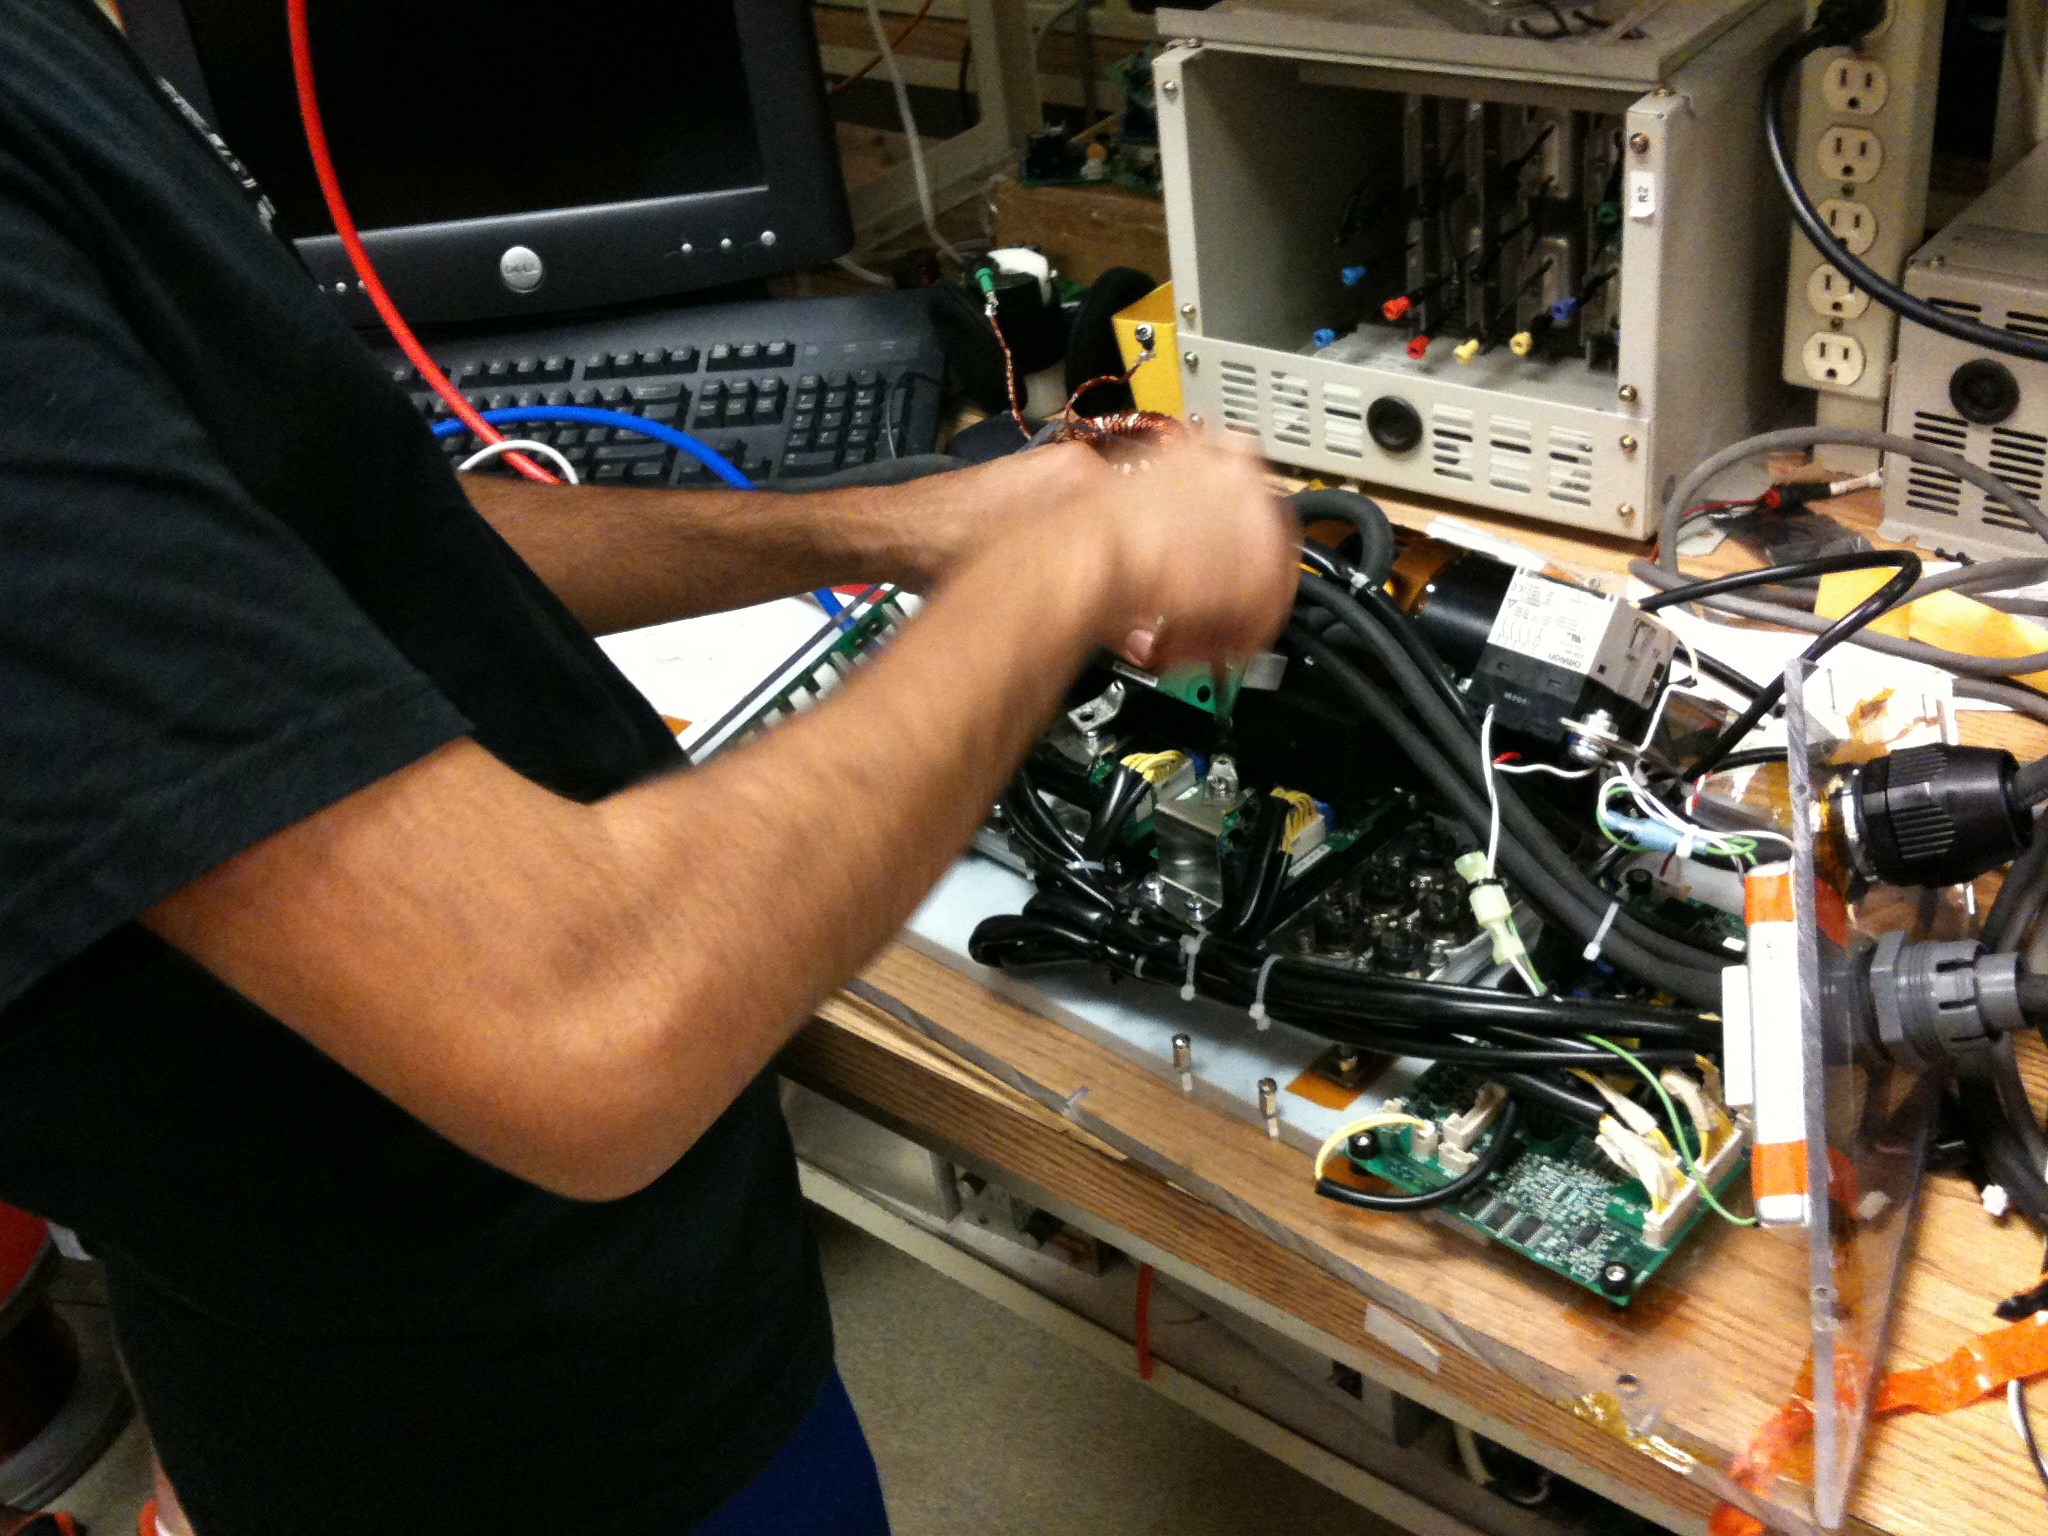 Working on the A1000 motor drive